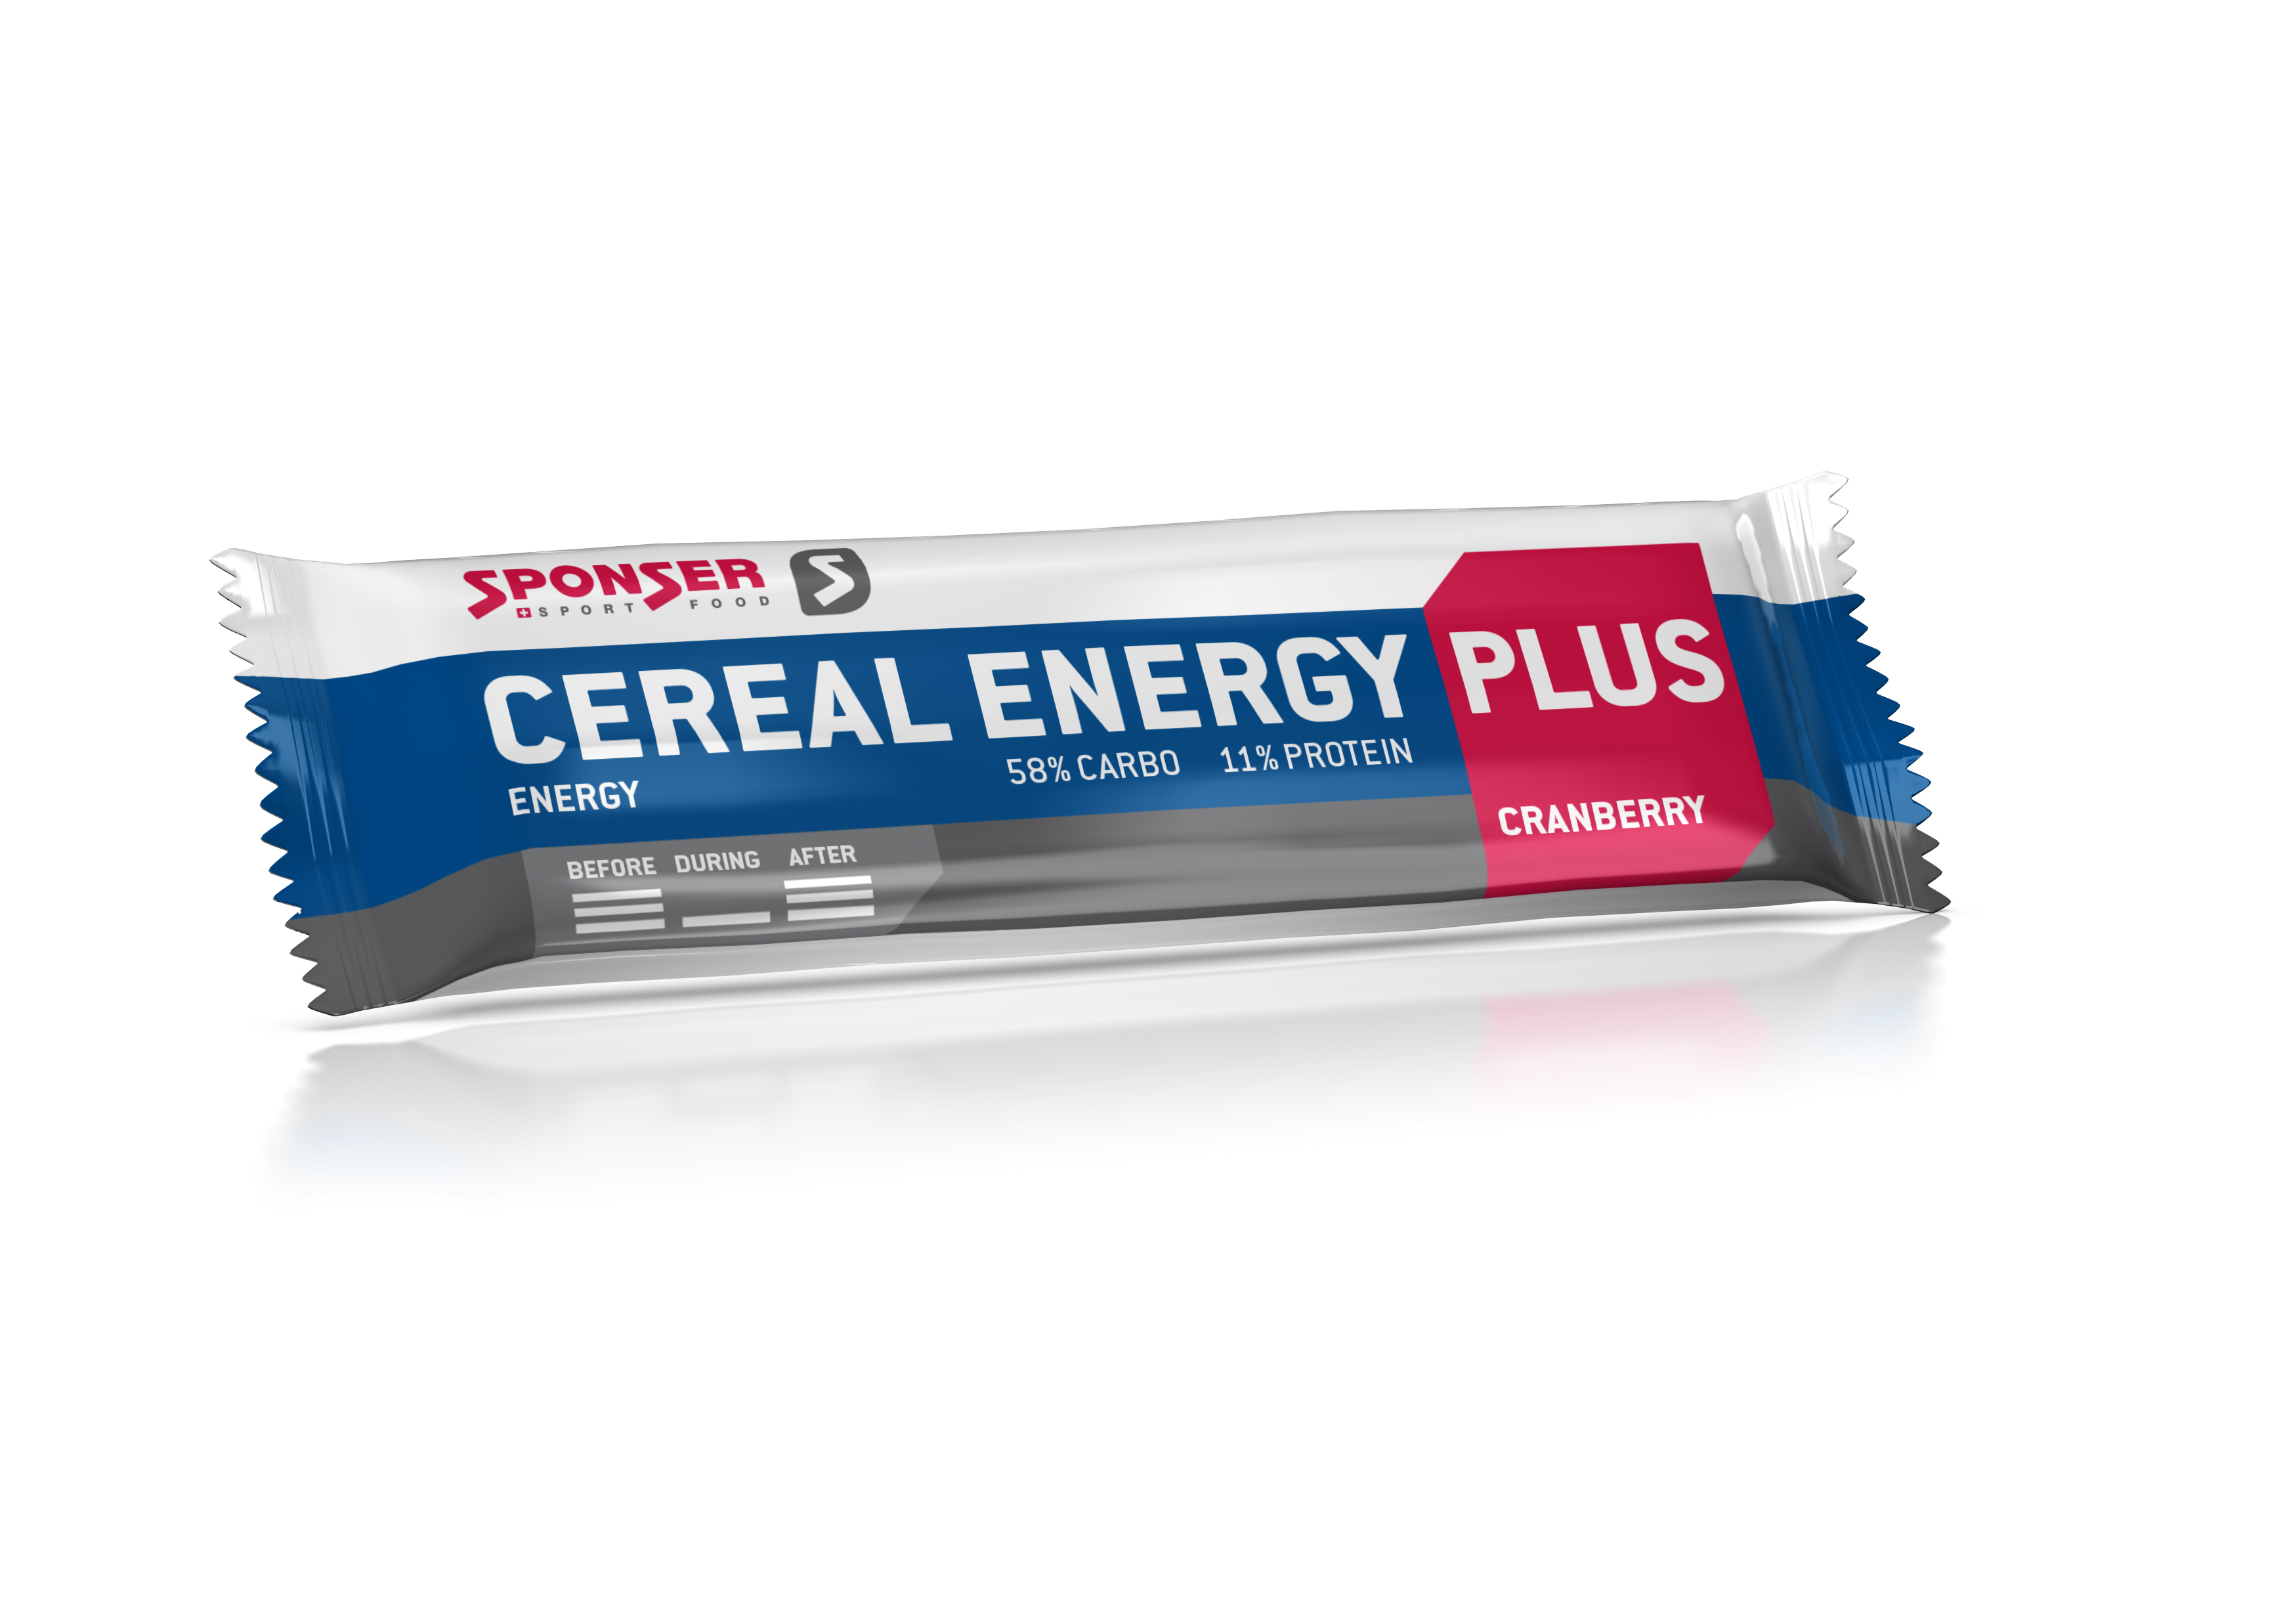 Sponser-Cereal-Energy-Plus_Cranberry-johvika-energiabatoon